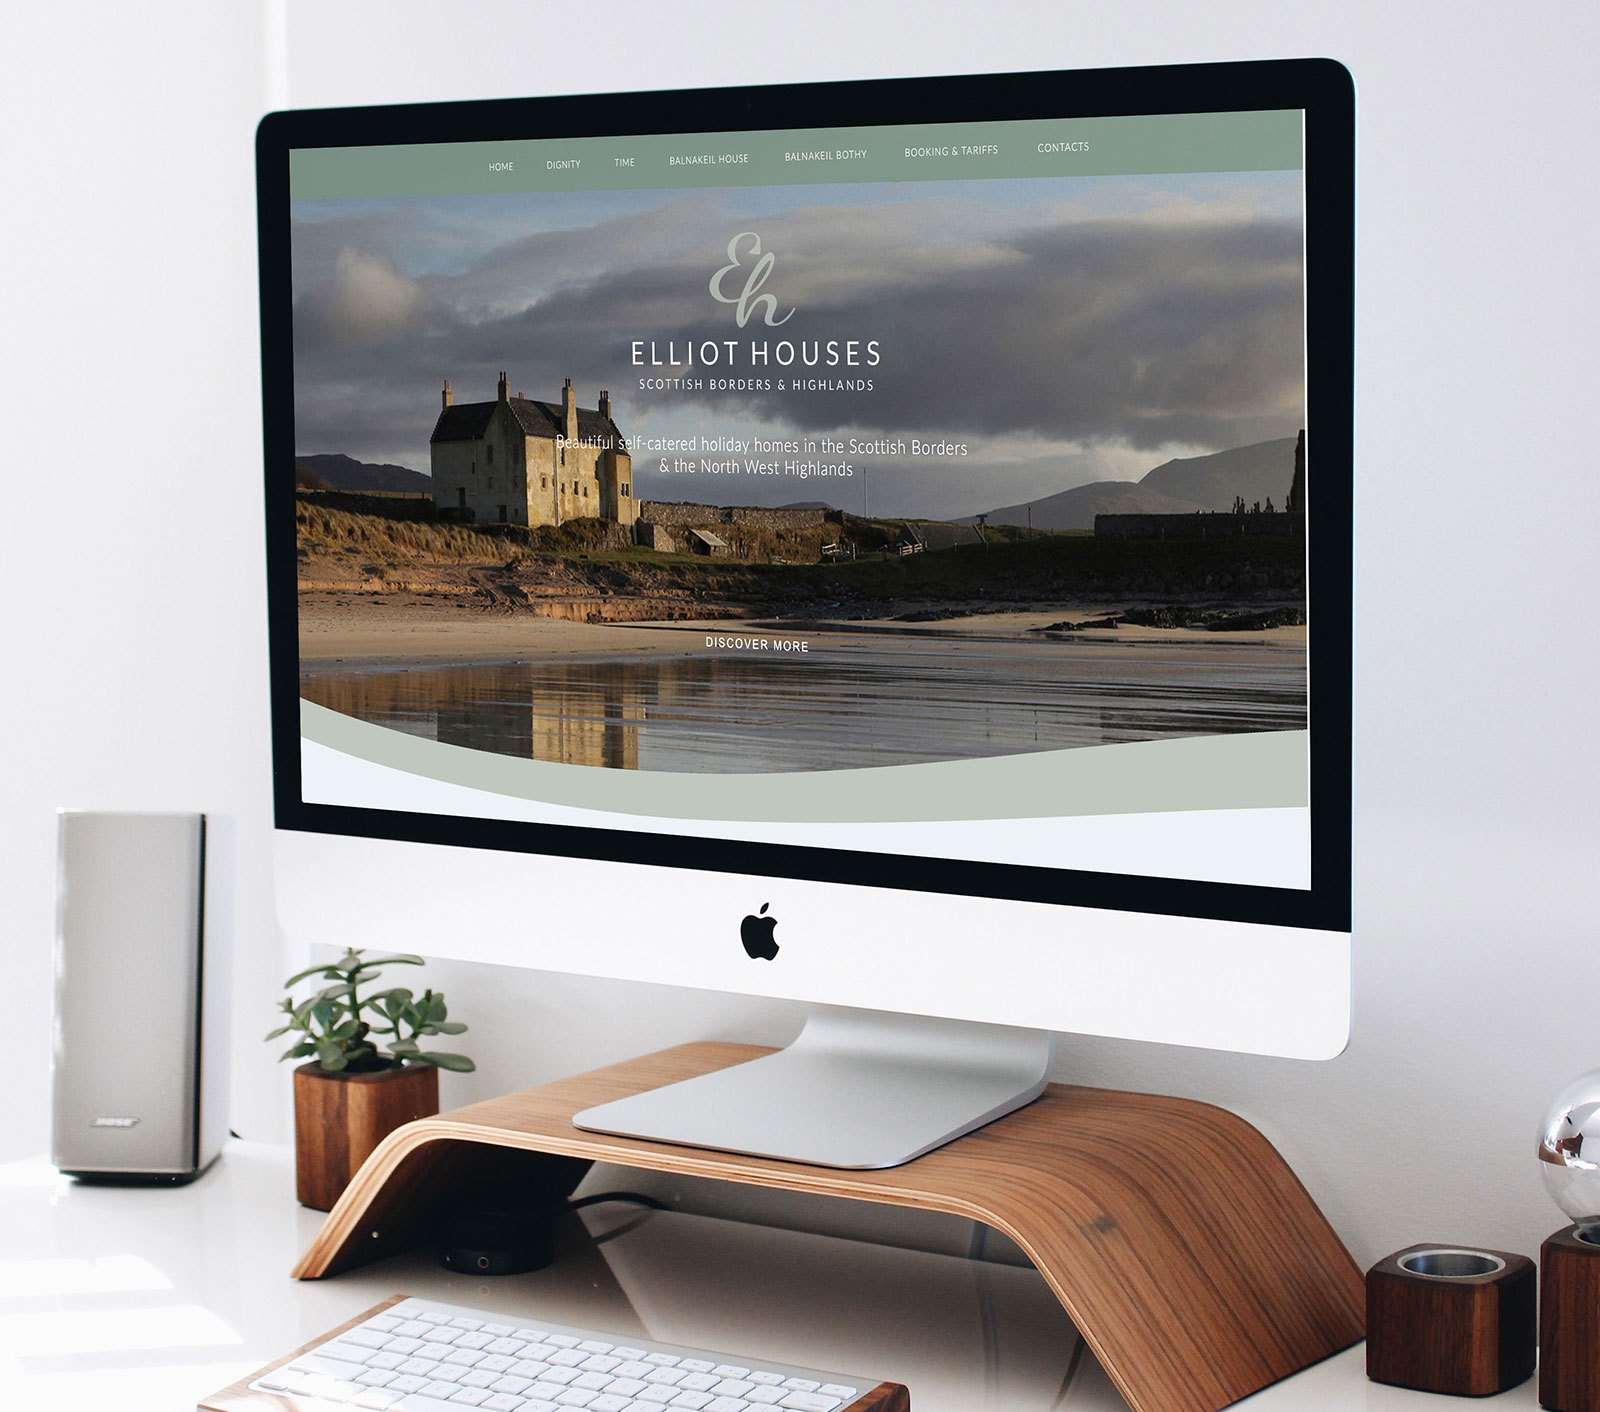 John Hamlin, Brand & Web Consultant - Elliot Houses Website Design